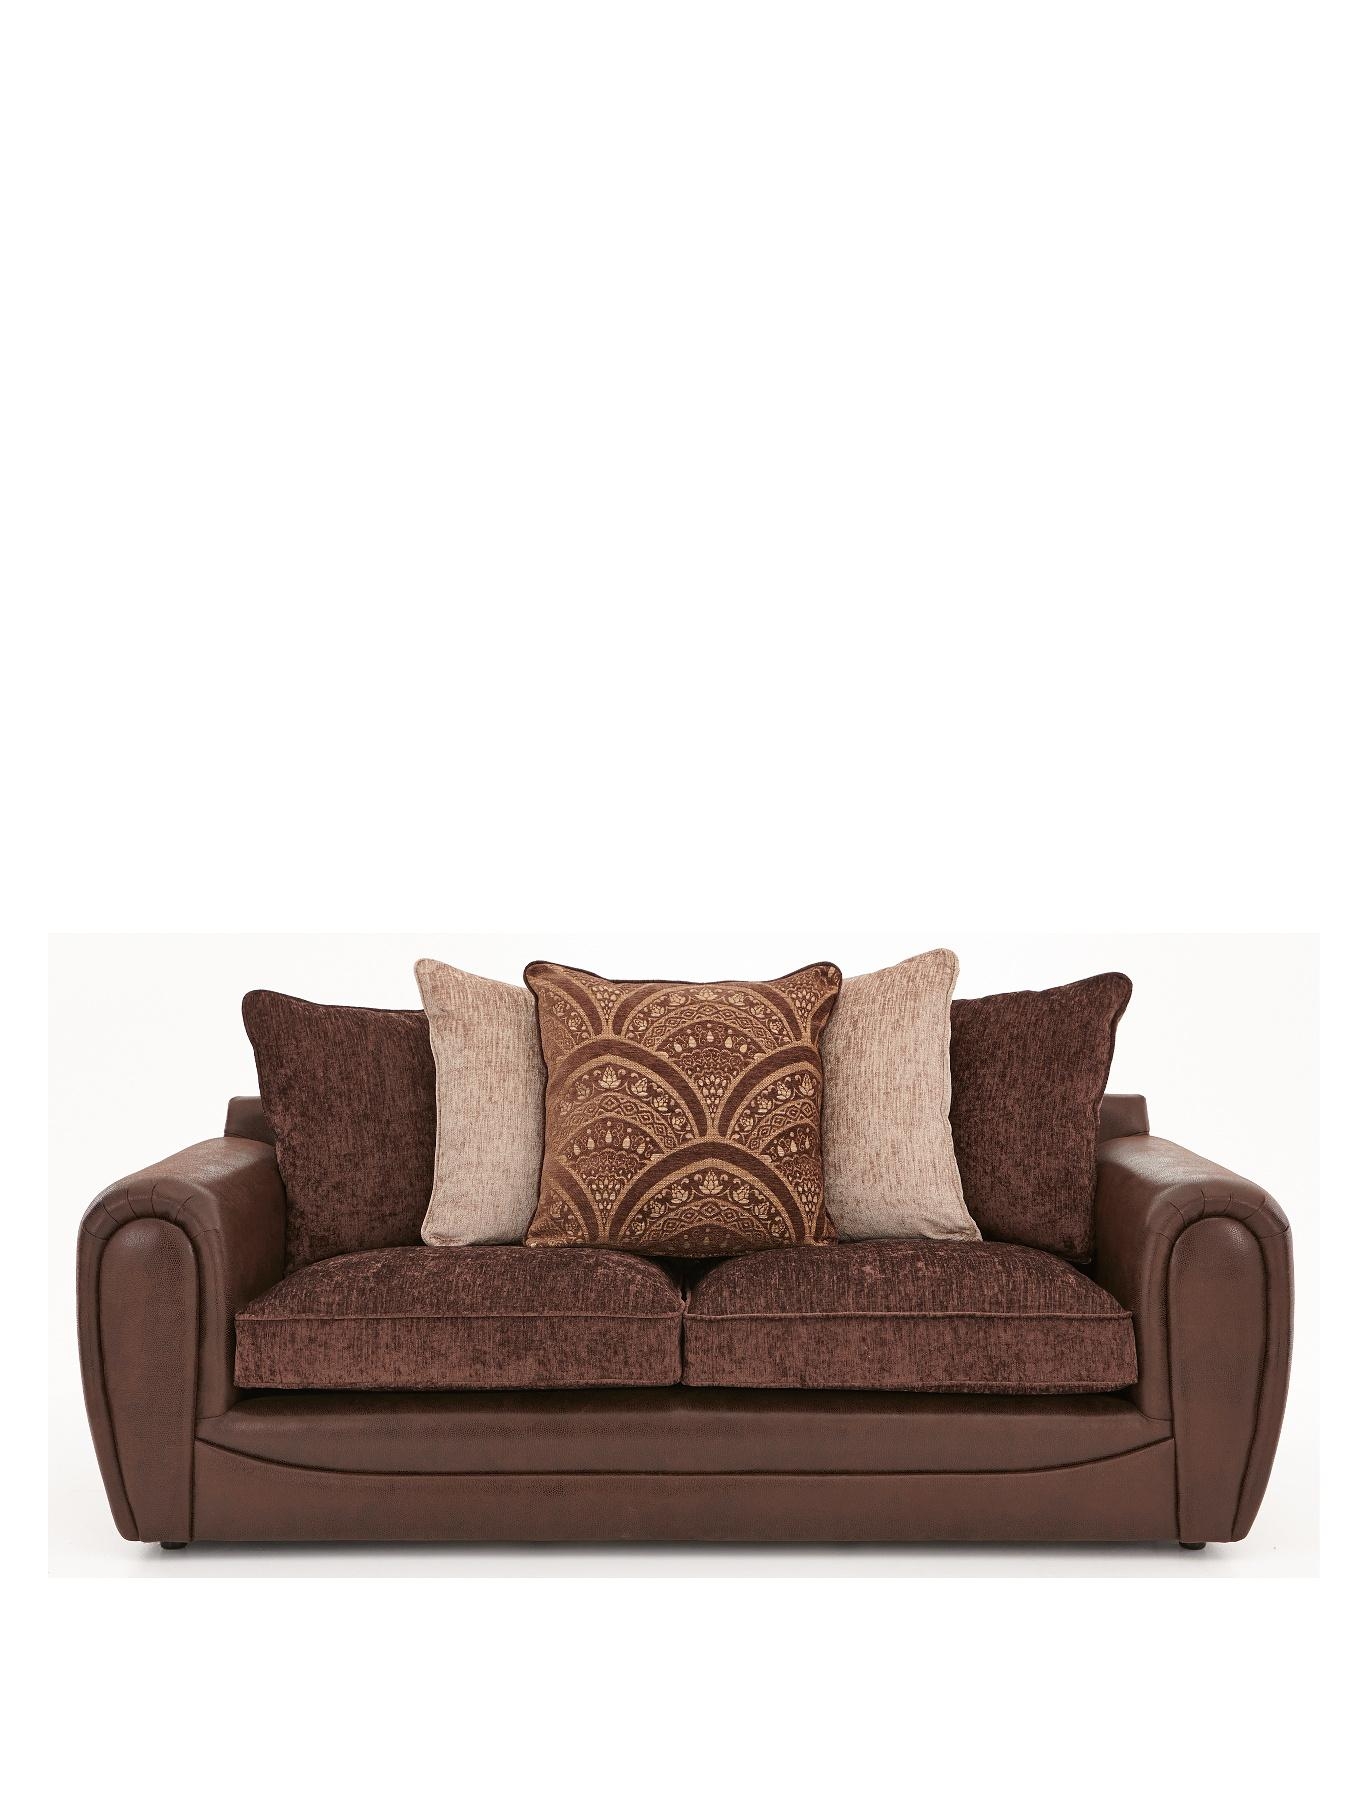 Gatsby 3-Seater Sofa, Chocolate,Grey,Black